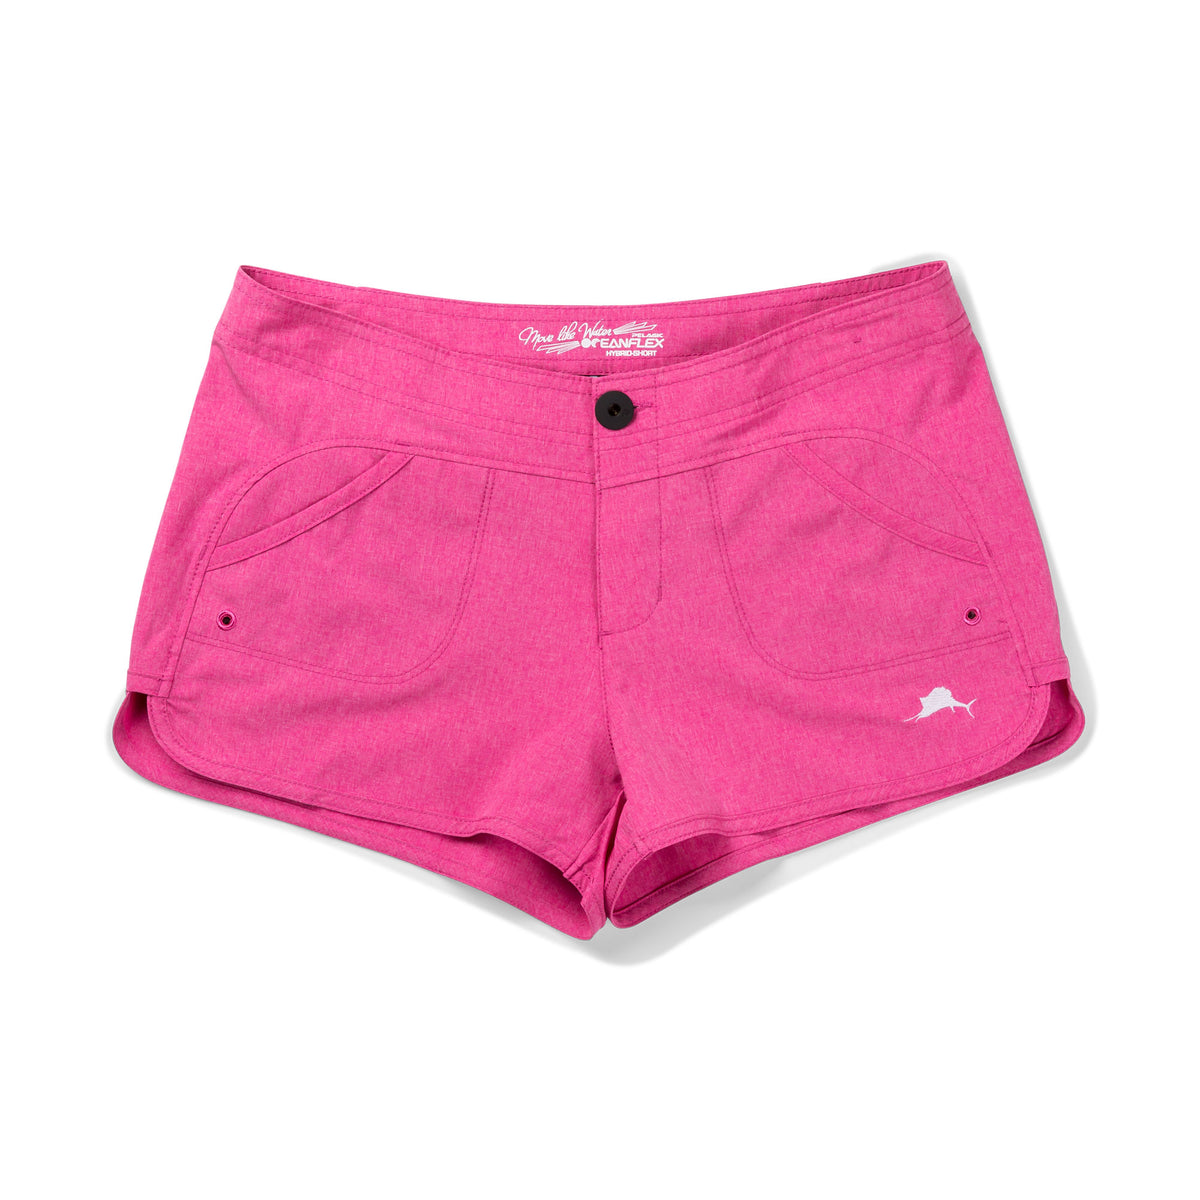 Moana Hybrid Fishing Shorts Big Image - 1